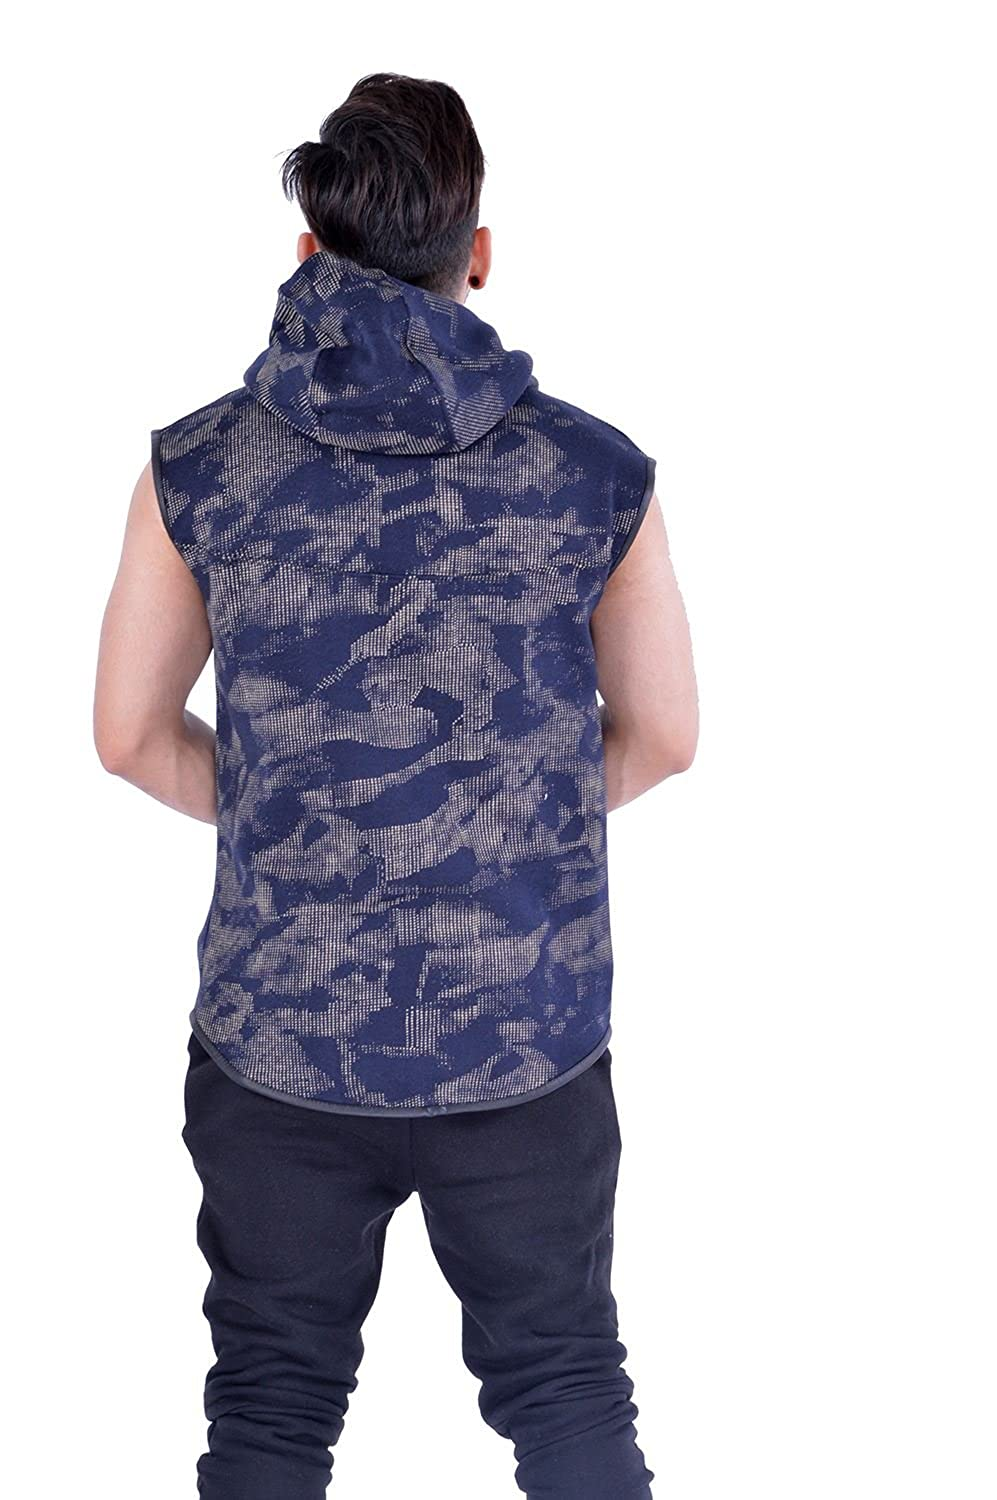 Men's Camouflage Printed Gilet Fleece Bodywarmer MMT